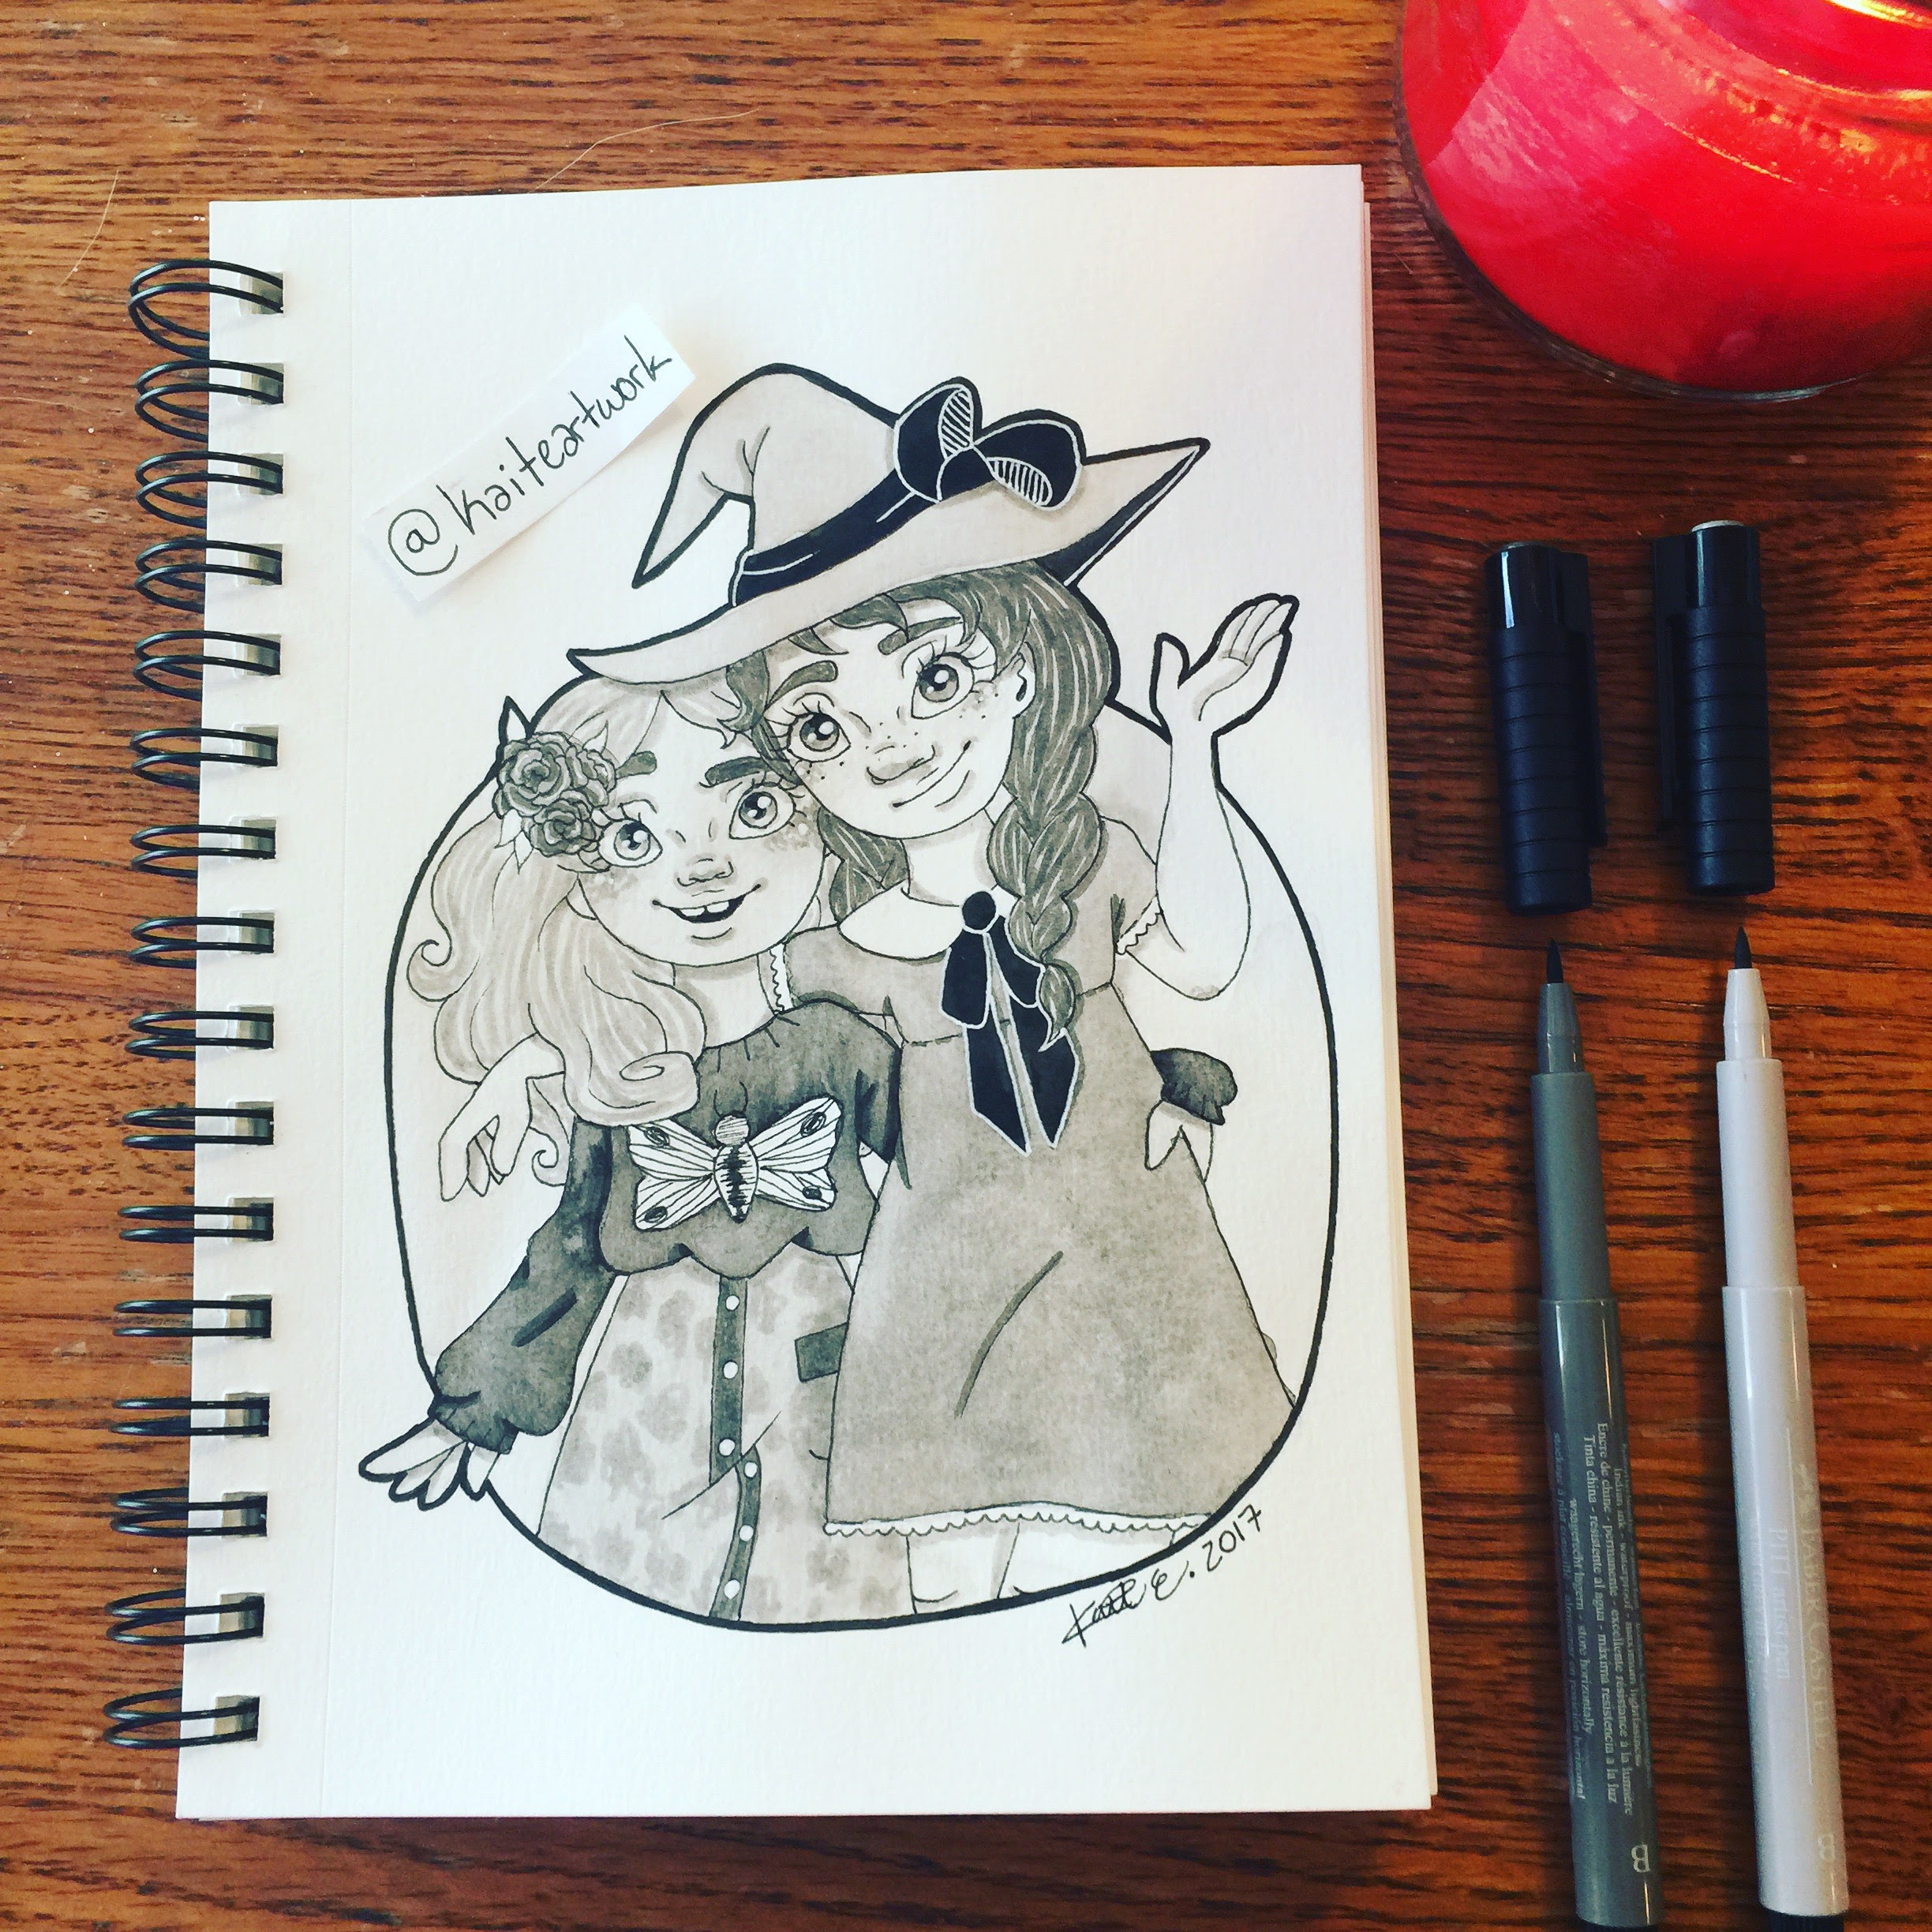 Day 7: Penelope and Charlotte